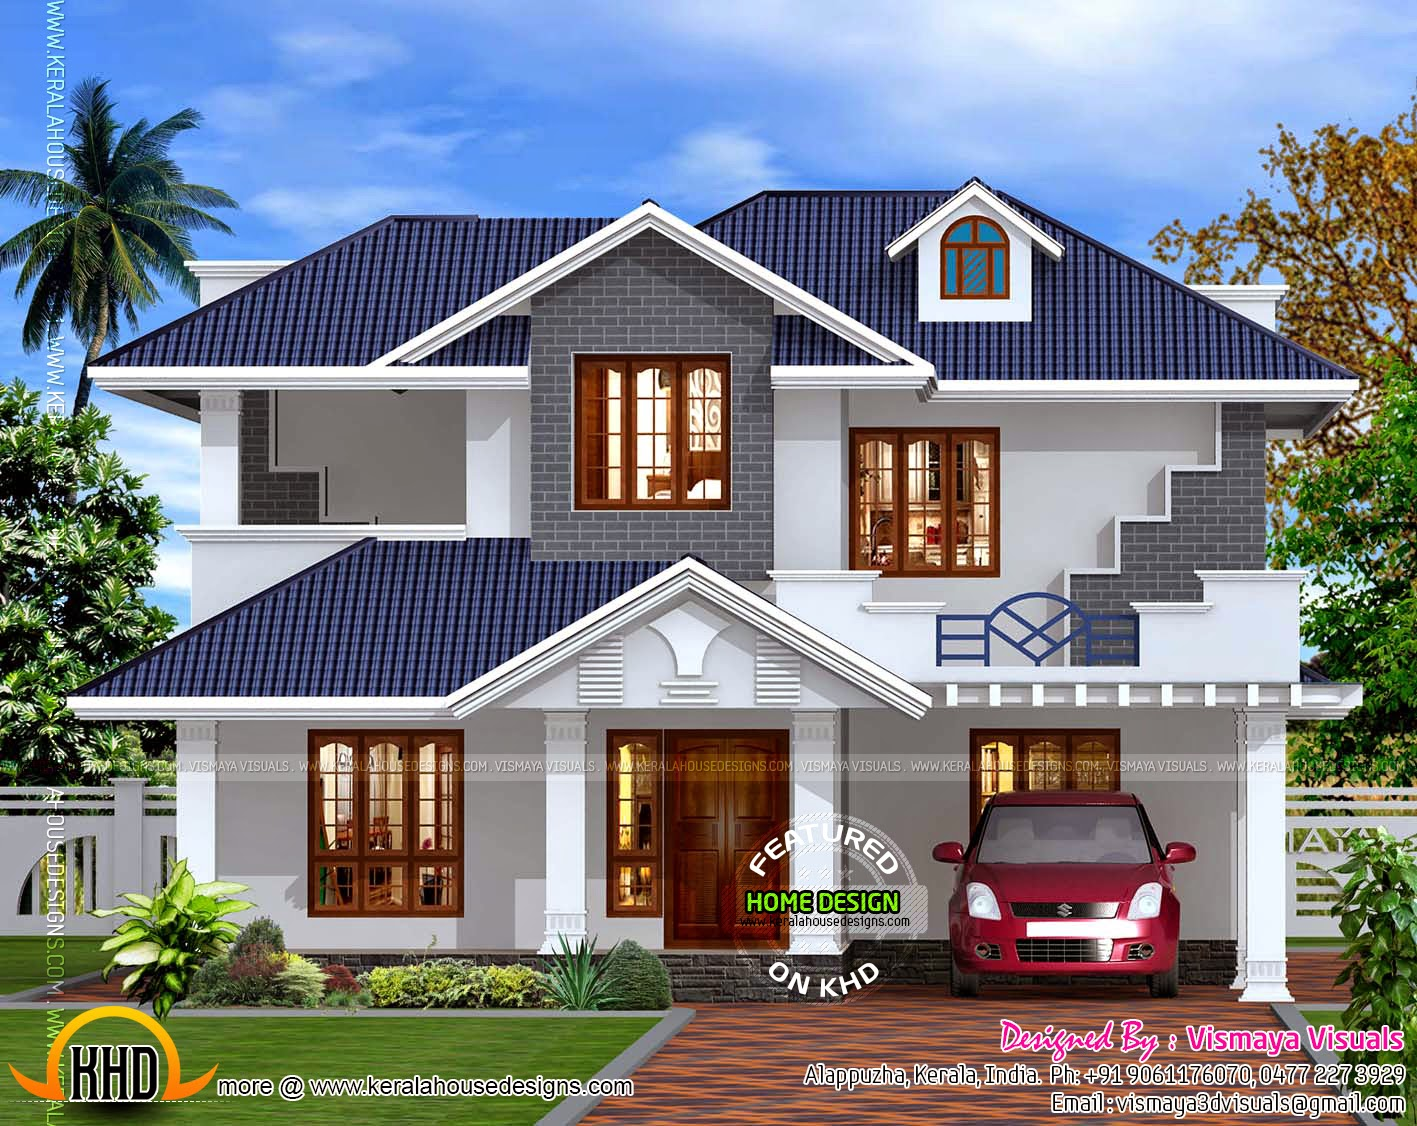 Small House Elevation Kerala Style : Kerala style villa exterior home design and floor